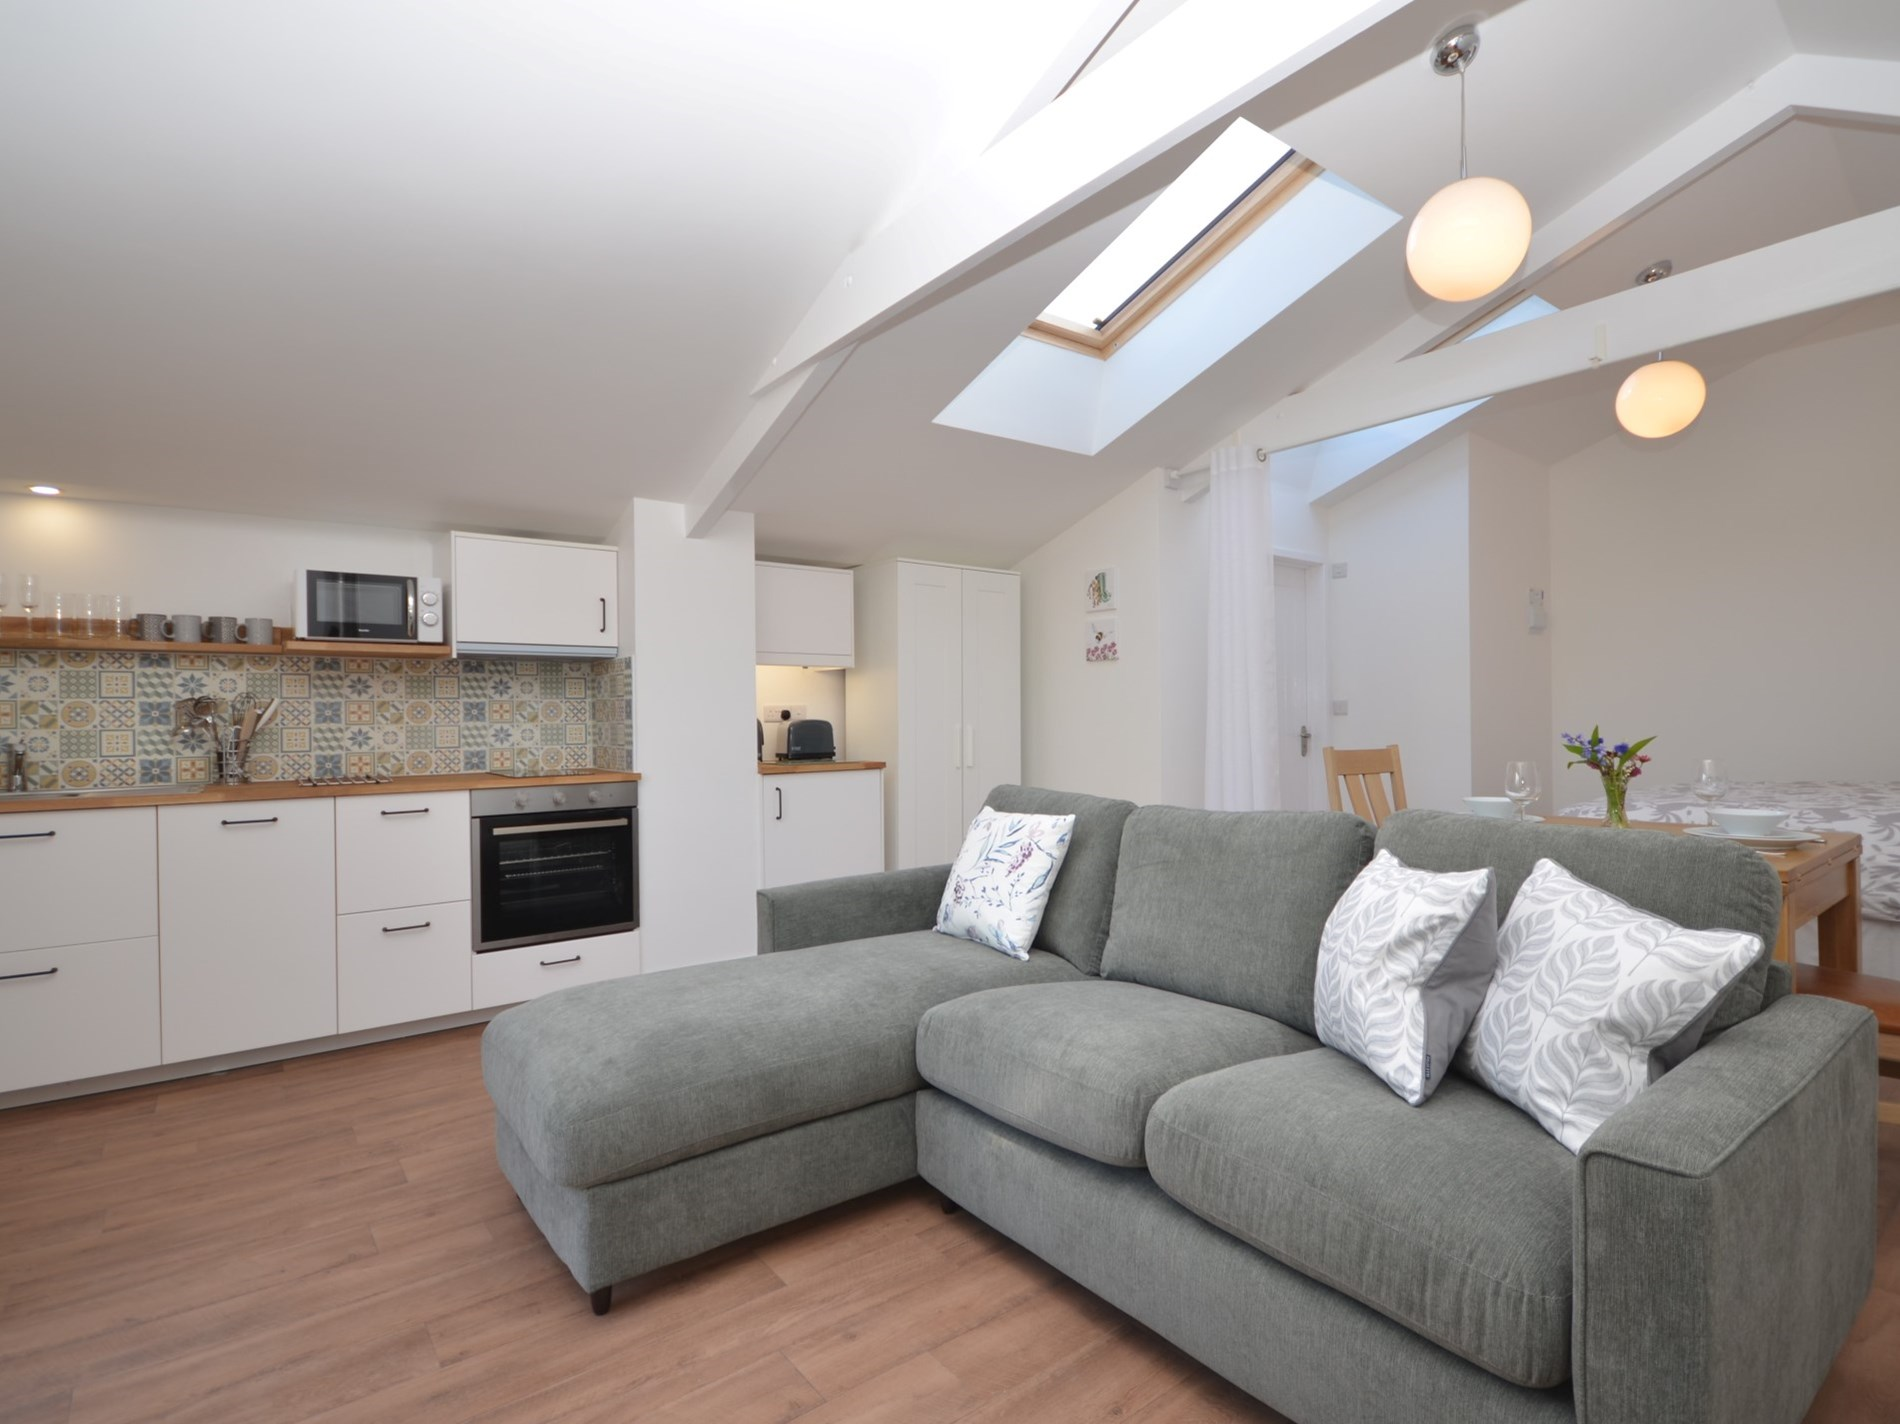 Relax in this bright and airy studio accomodation